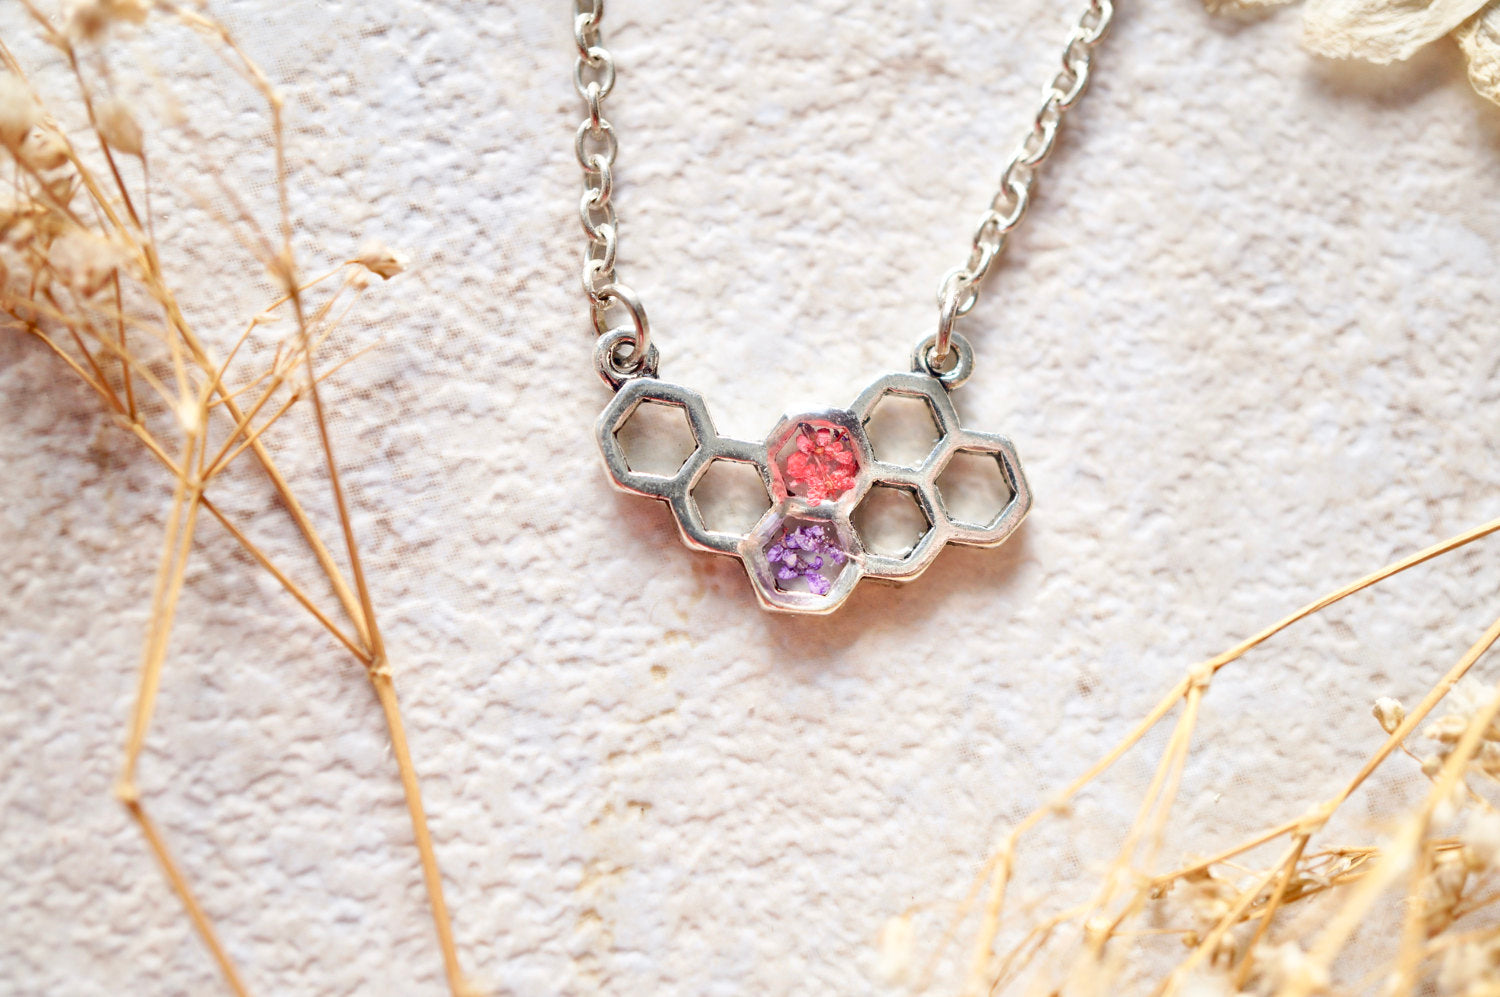 Real Dried Flowers in Honeycomb Resin Necklace in Pink and Purple